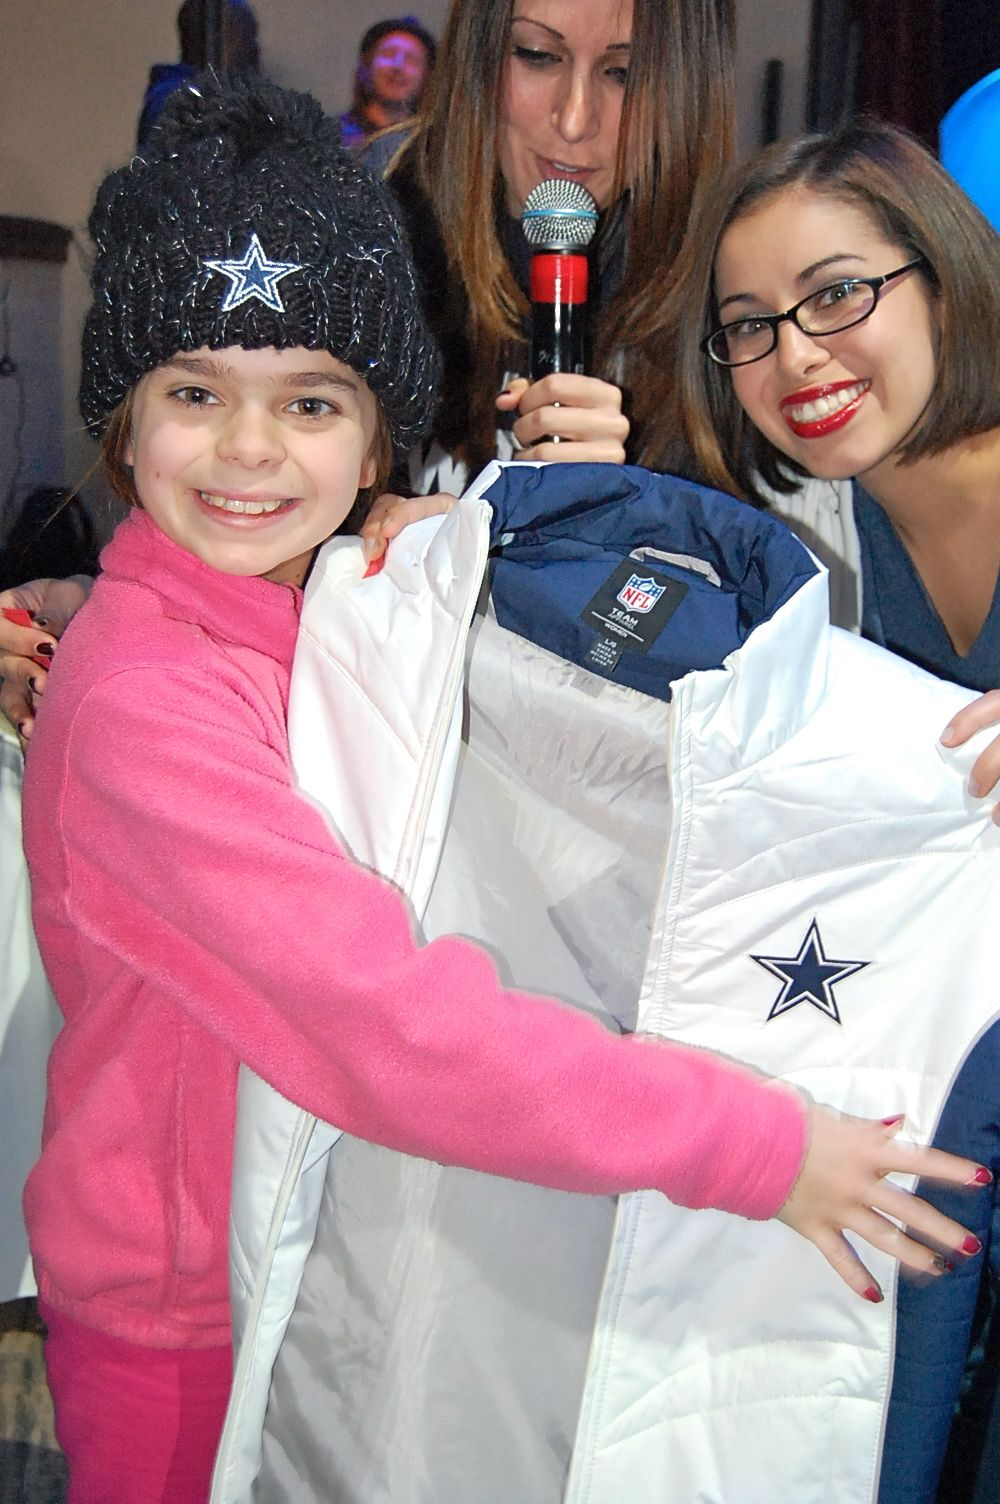 Massive prize giveaway dallas cowboys player meet greet the star sports tours player meet greet is your chance to meet current players of the dallas cowboys bring your favorite jersey hat or football to get m4hsunfo